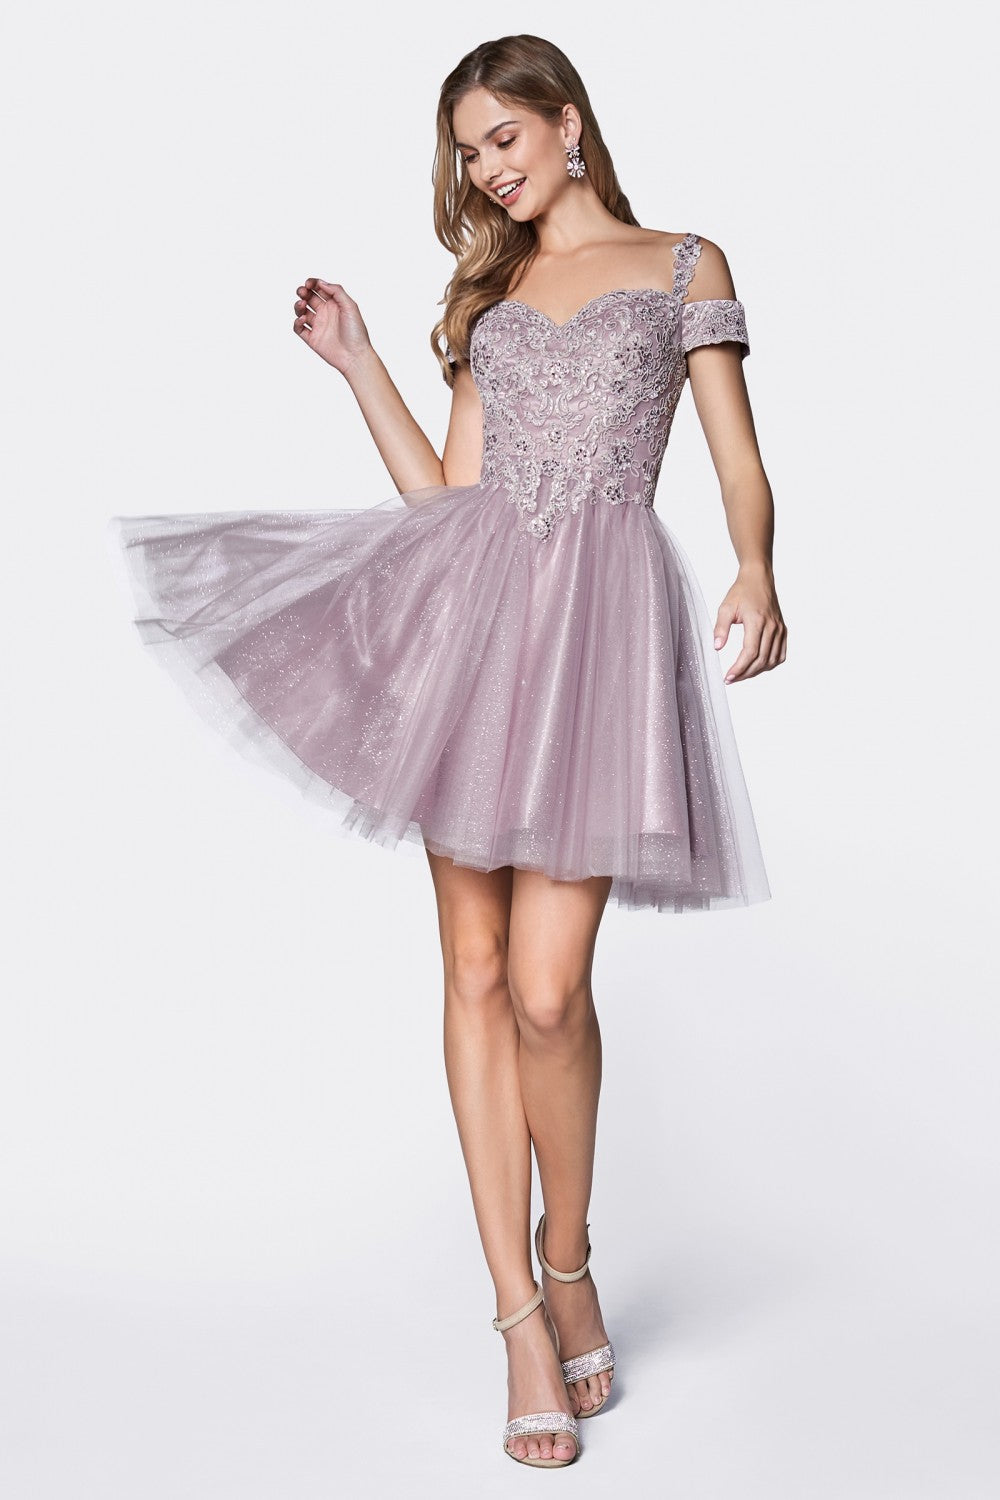 Short Cocktail Dress With Off The Shoulder Lace Detail And Glitter Tulle Skirt